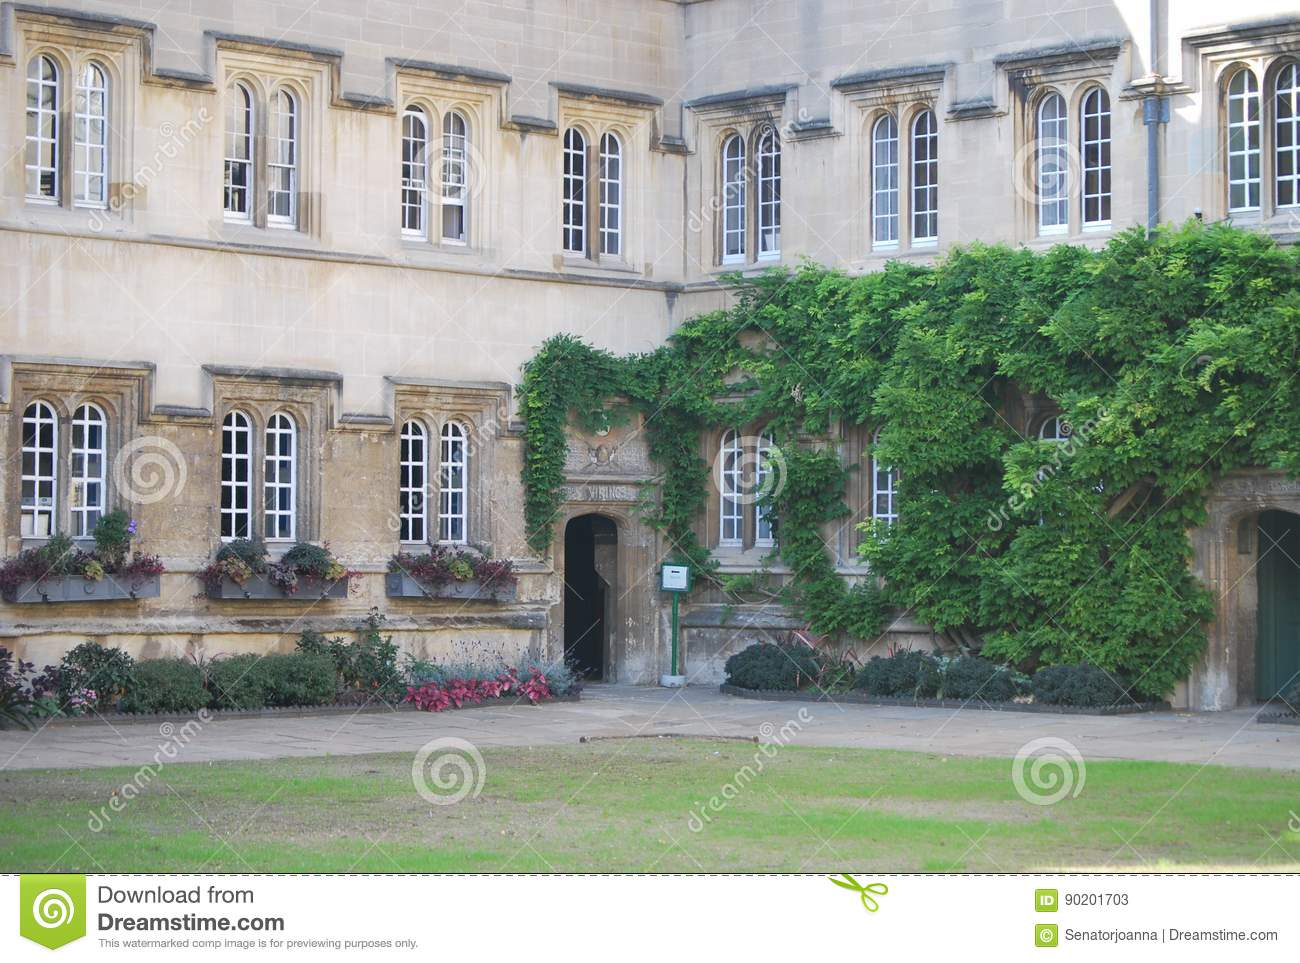 University Building In Oxford, The UK Stock Image - Image of